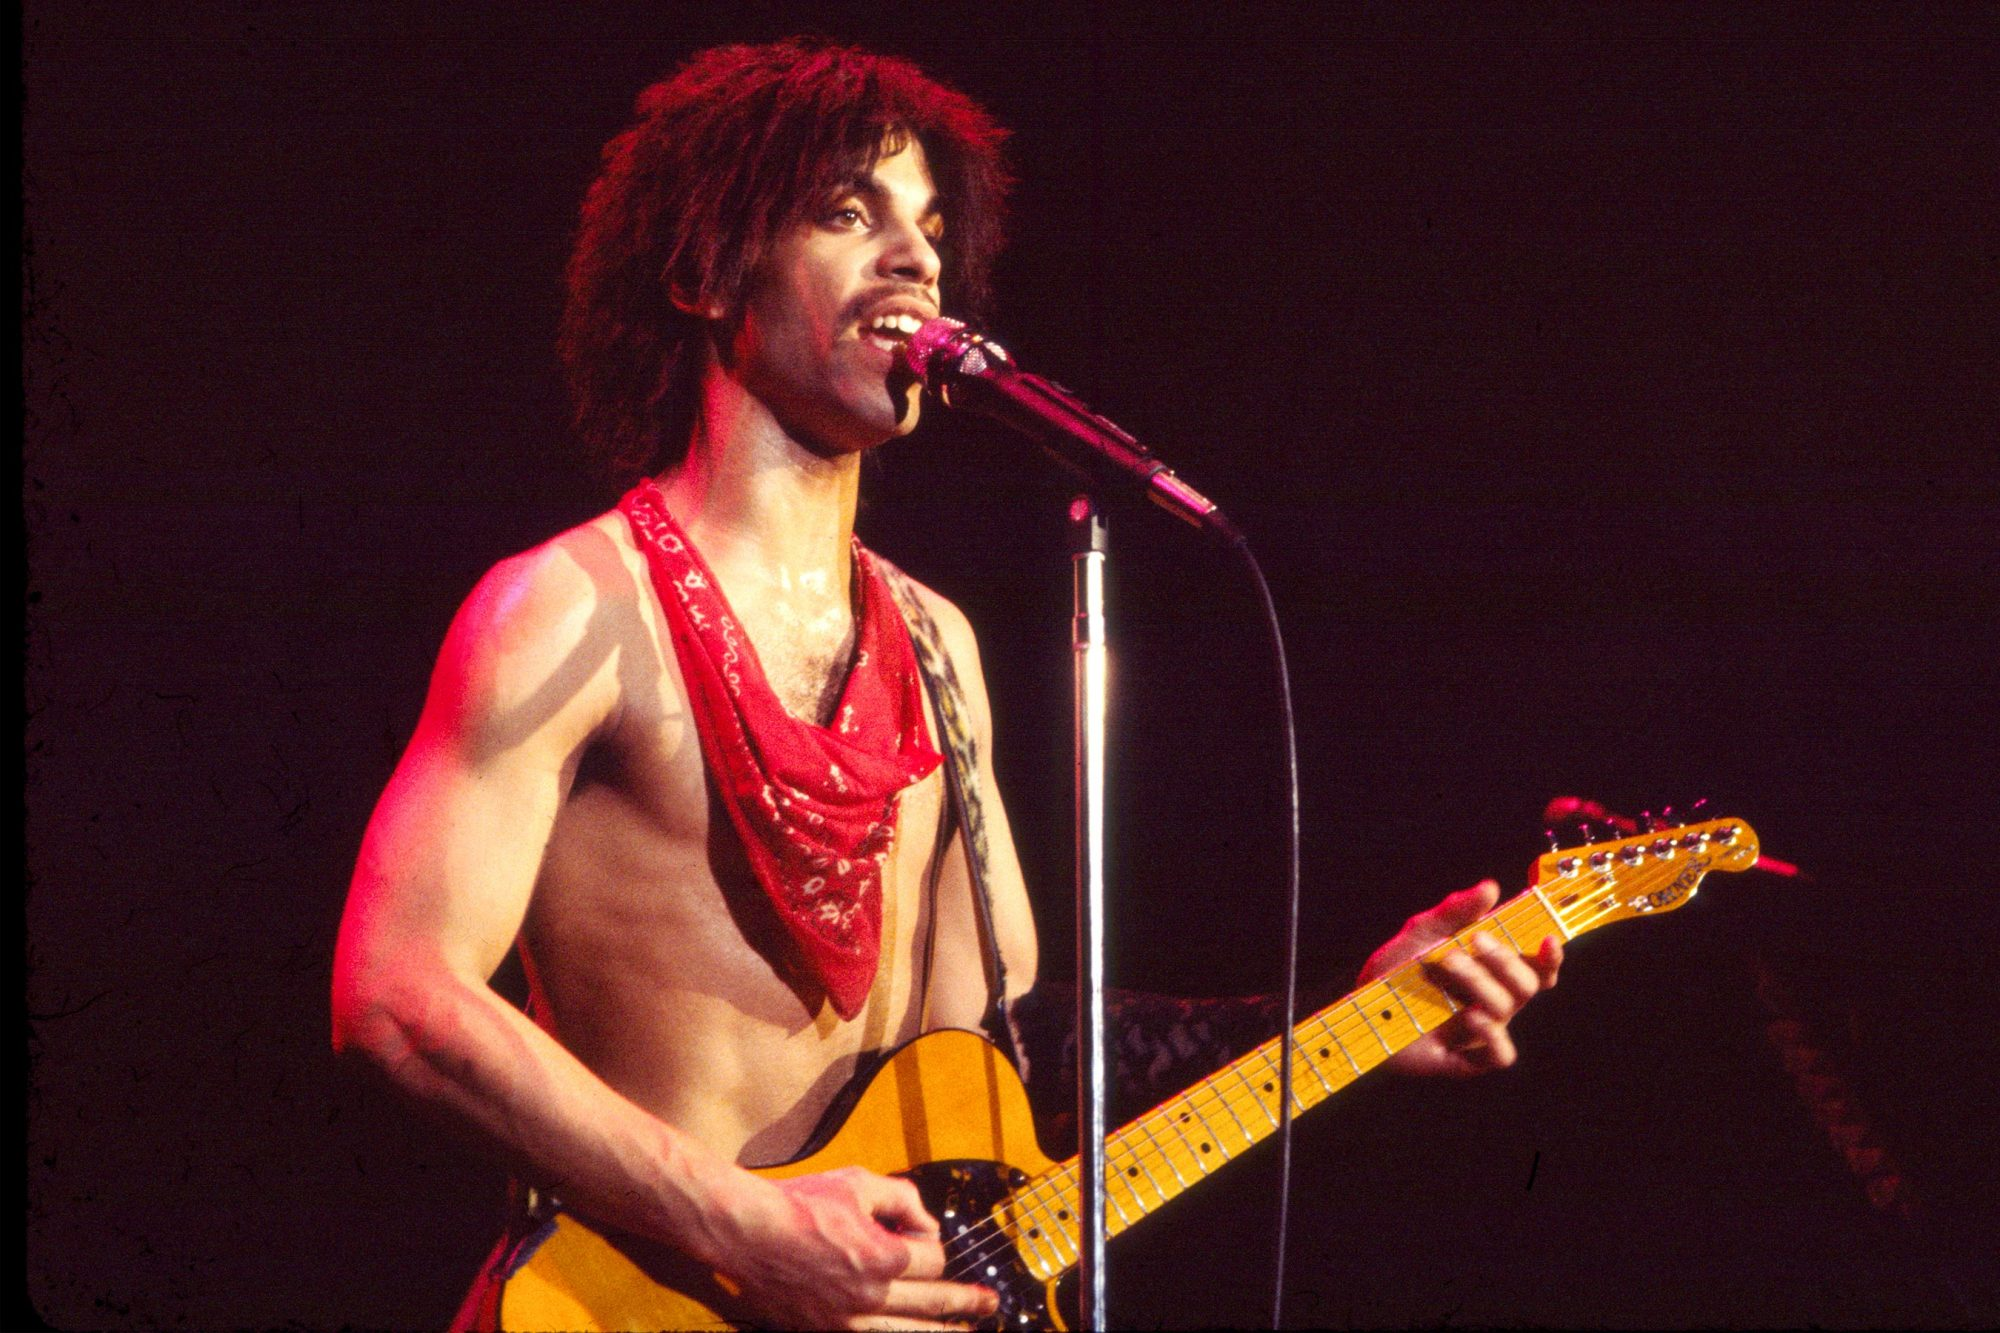 American musician Prince (1958 - 2016) plays guitar as he performs onstage at the Ritz during his 'Dirty Mind' tour, New York, New York, March 22, 1981. (Photo by Gary Gershoff/Getty Images)